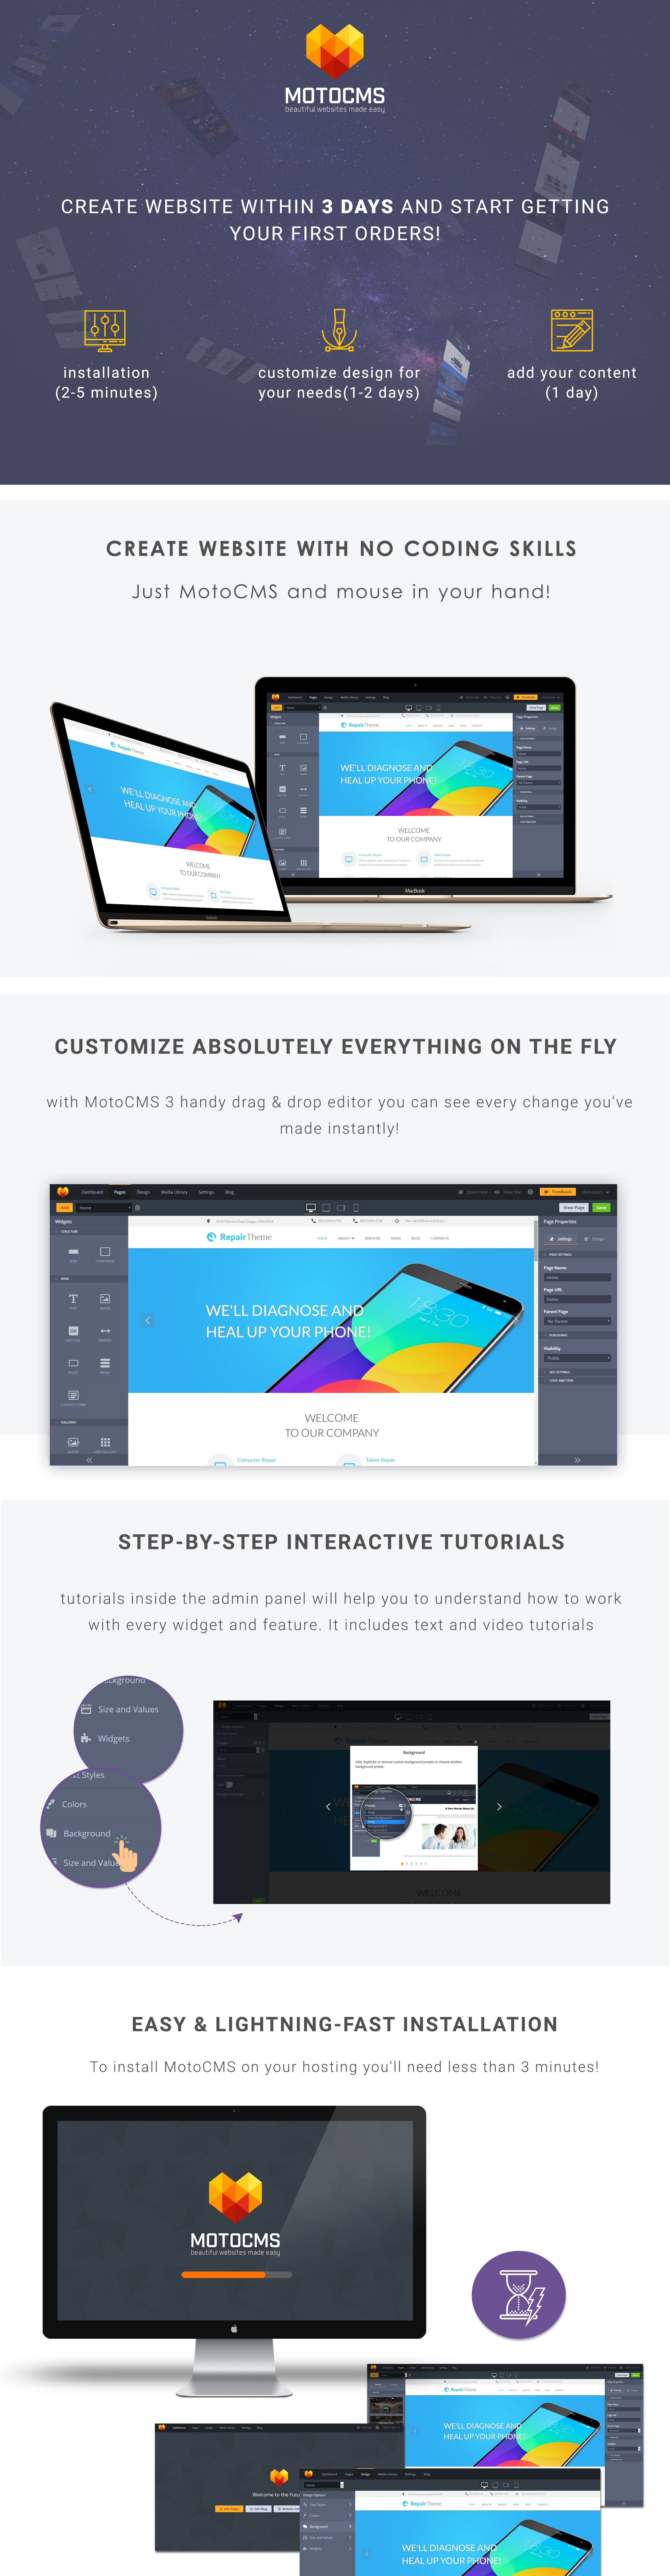 Repair Theme - Mobile Service Moto CMS 3 Template